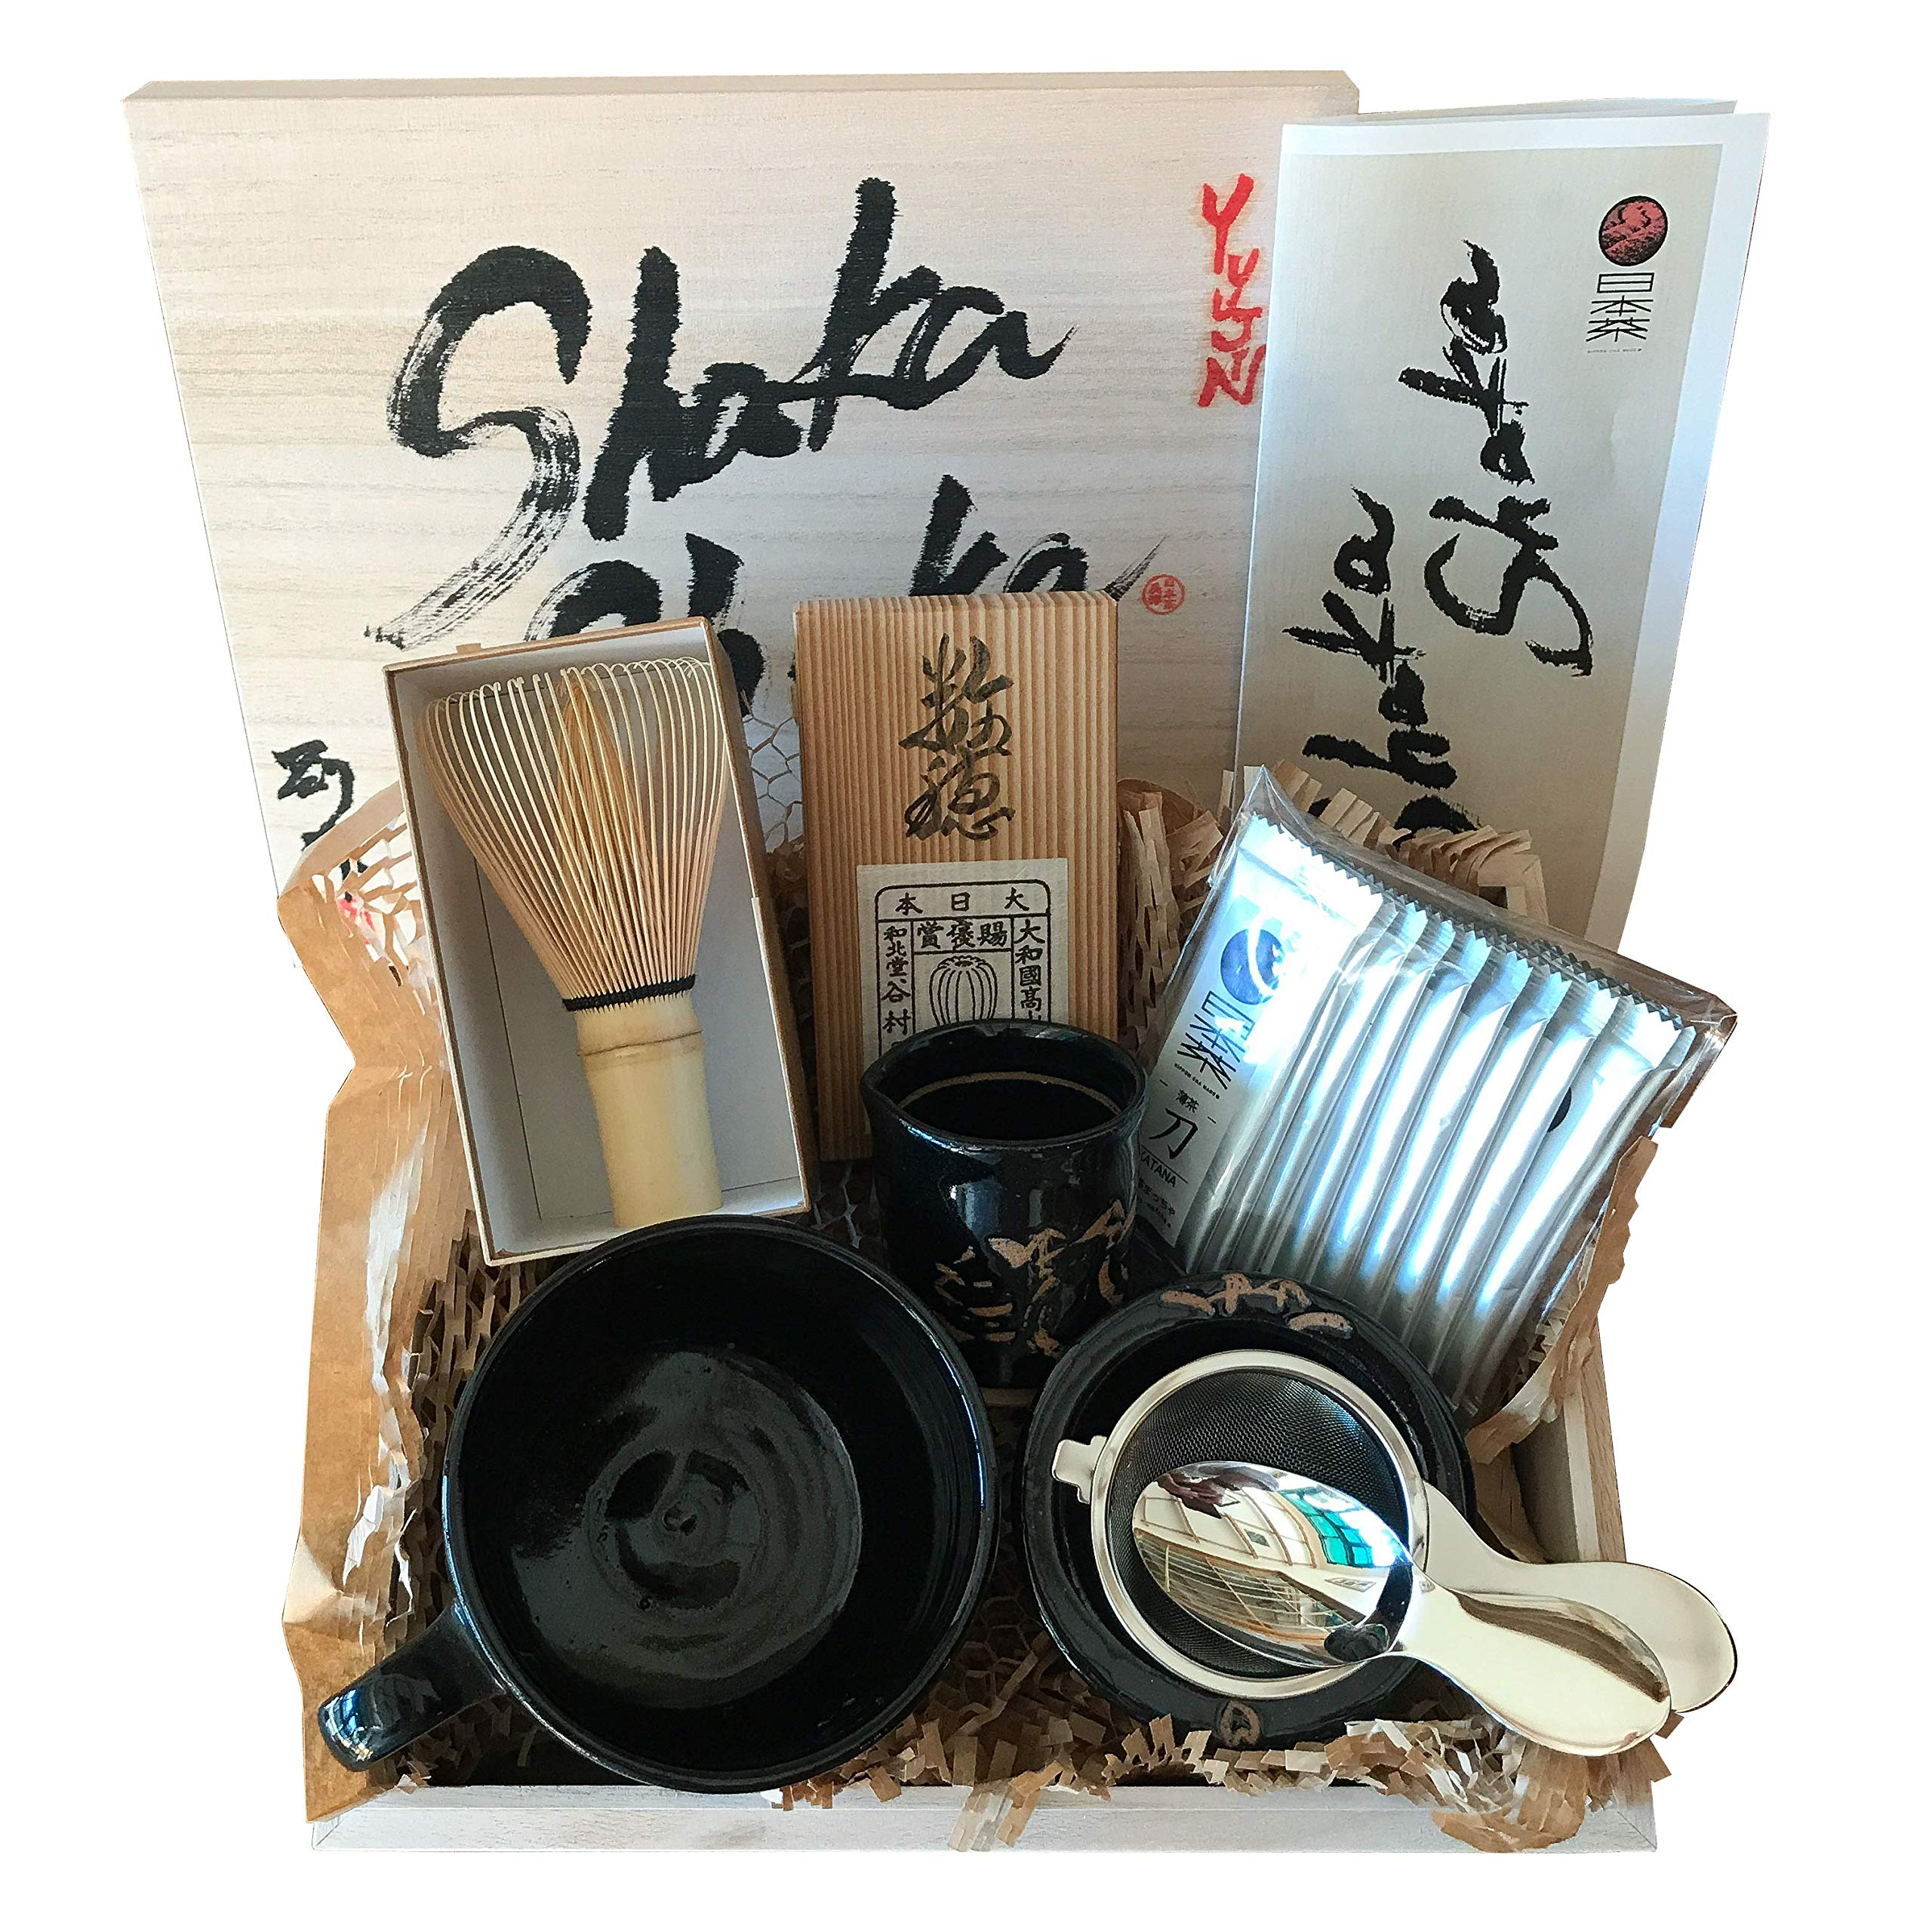 Nippon Cha - Shaka Shaka Set - Premium Matcha Set - Ceremonial Grade Matcha Powder - Japanese Handcrafted Matcha Bowl - Bamboo Whisk - Stainless Steel Spoon & Strainer - Made In Japan(Black)